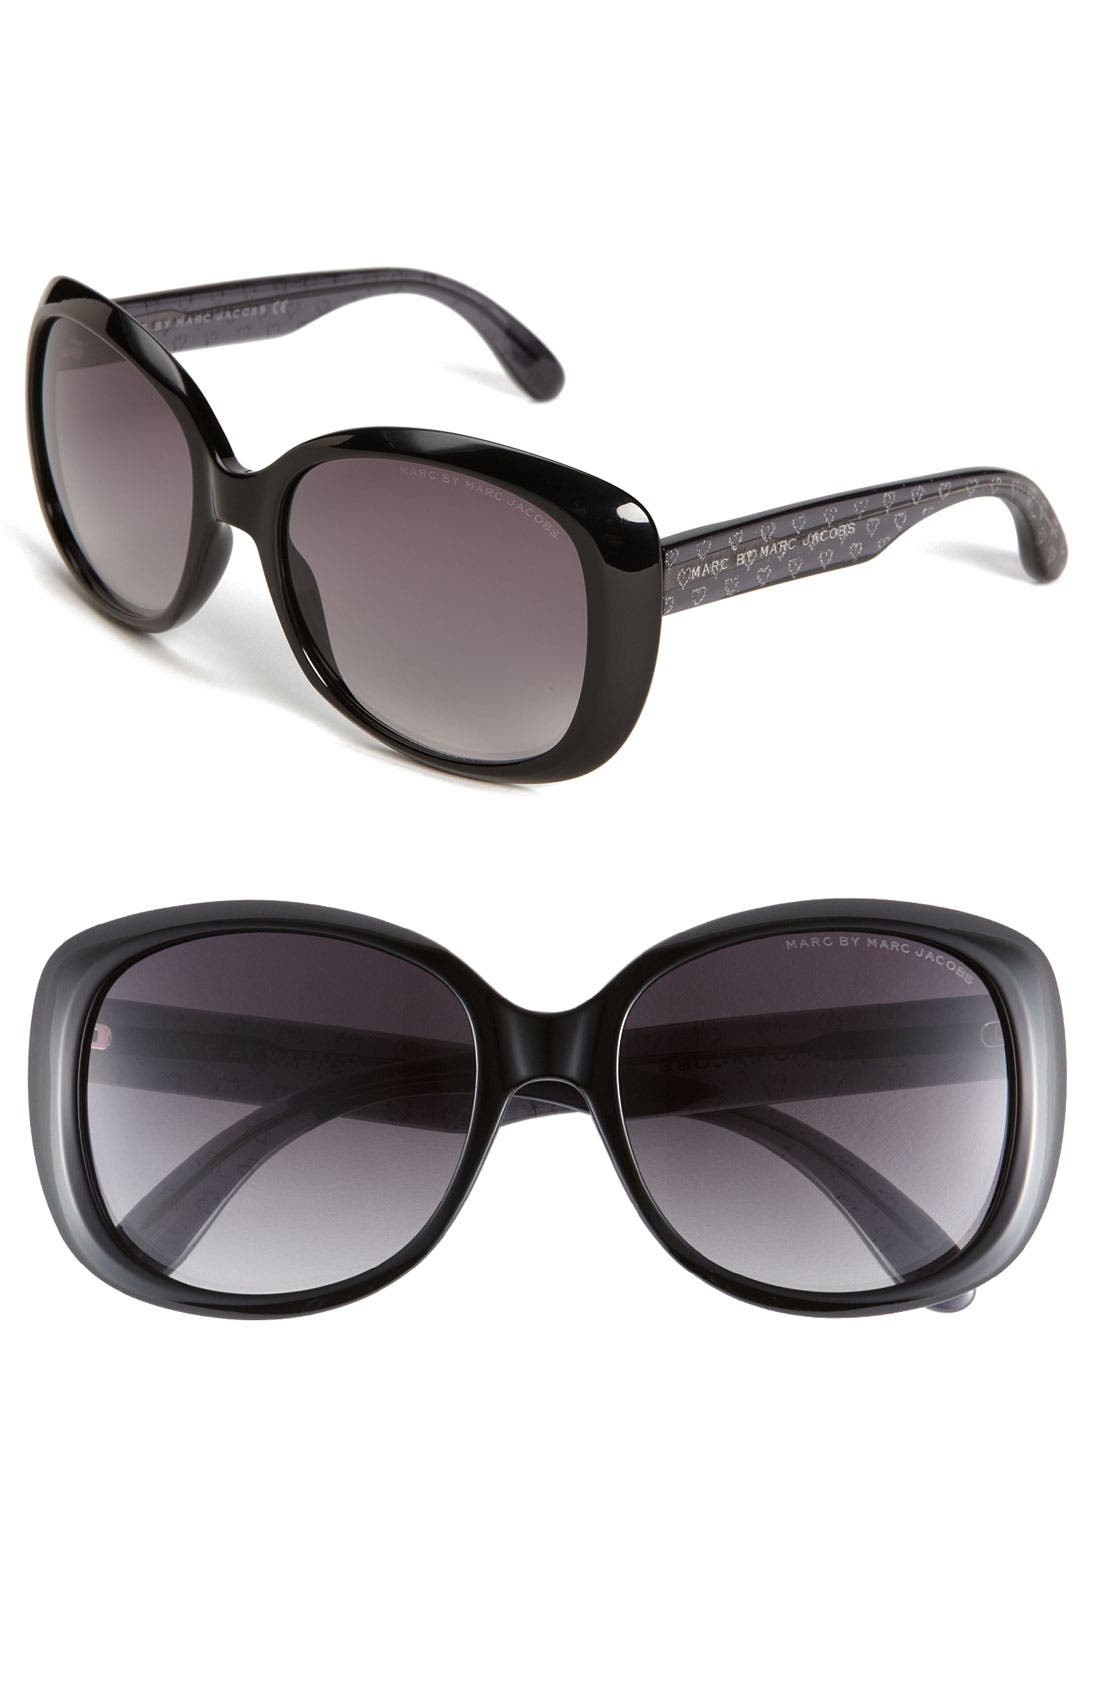 Main Image - MARC BY MARC JACOBS Oversized Sunglasses